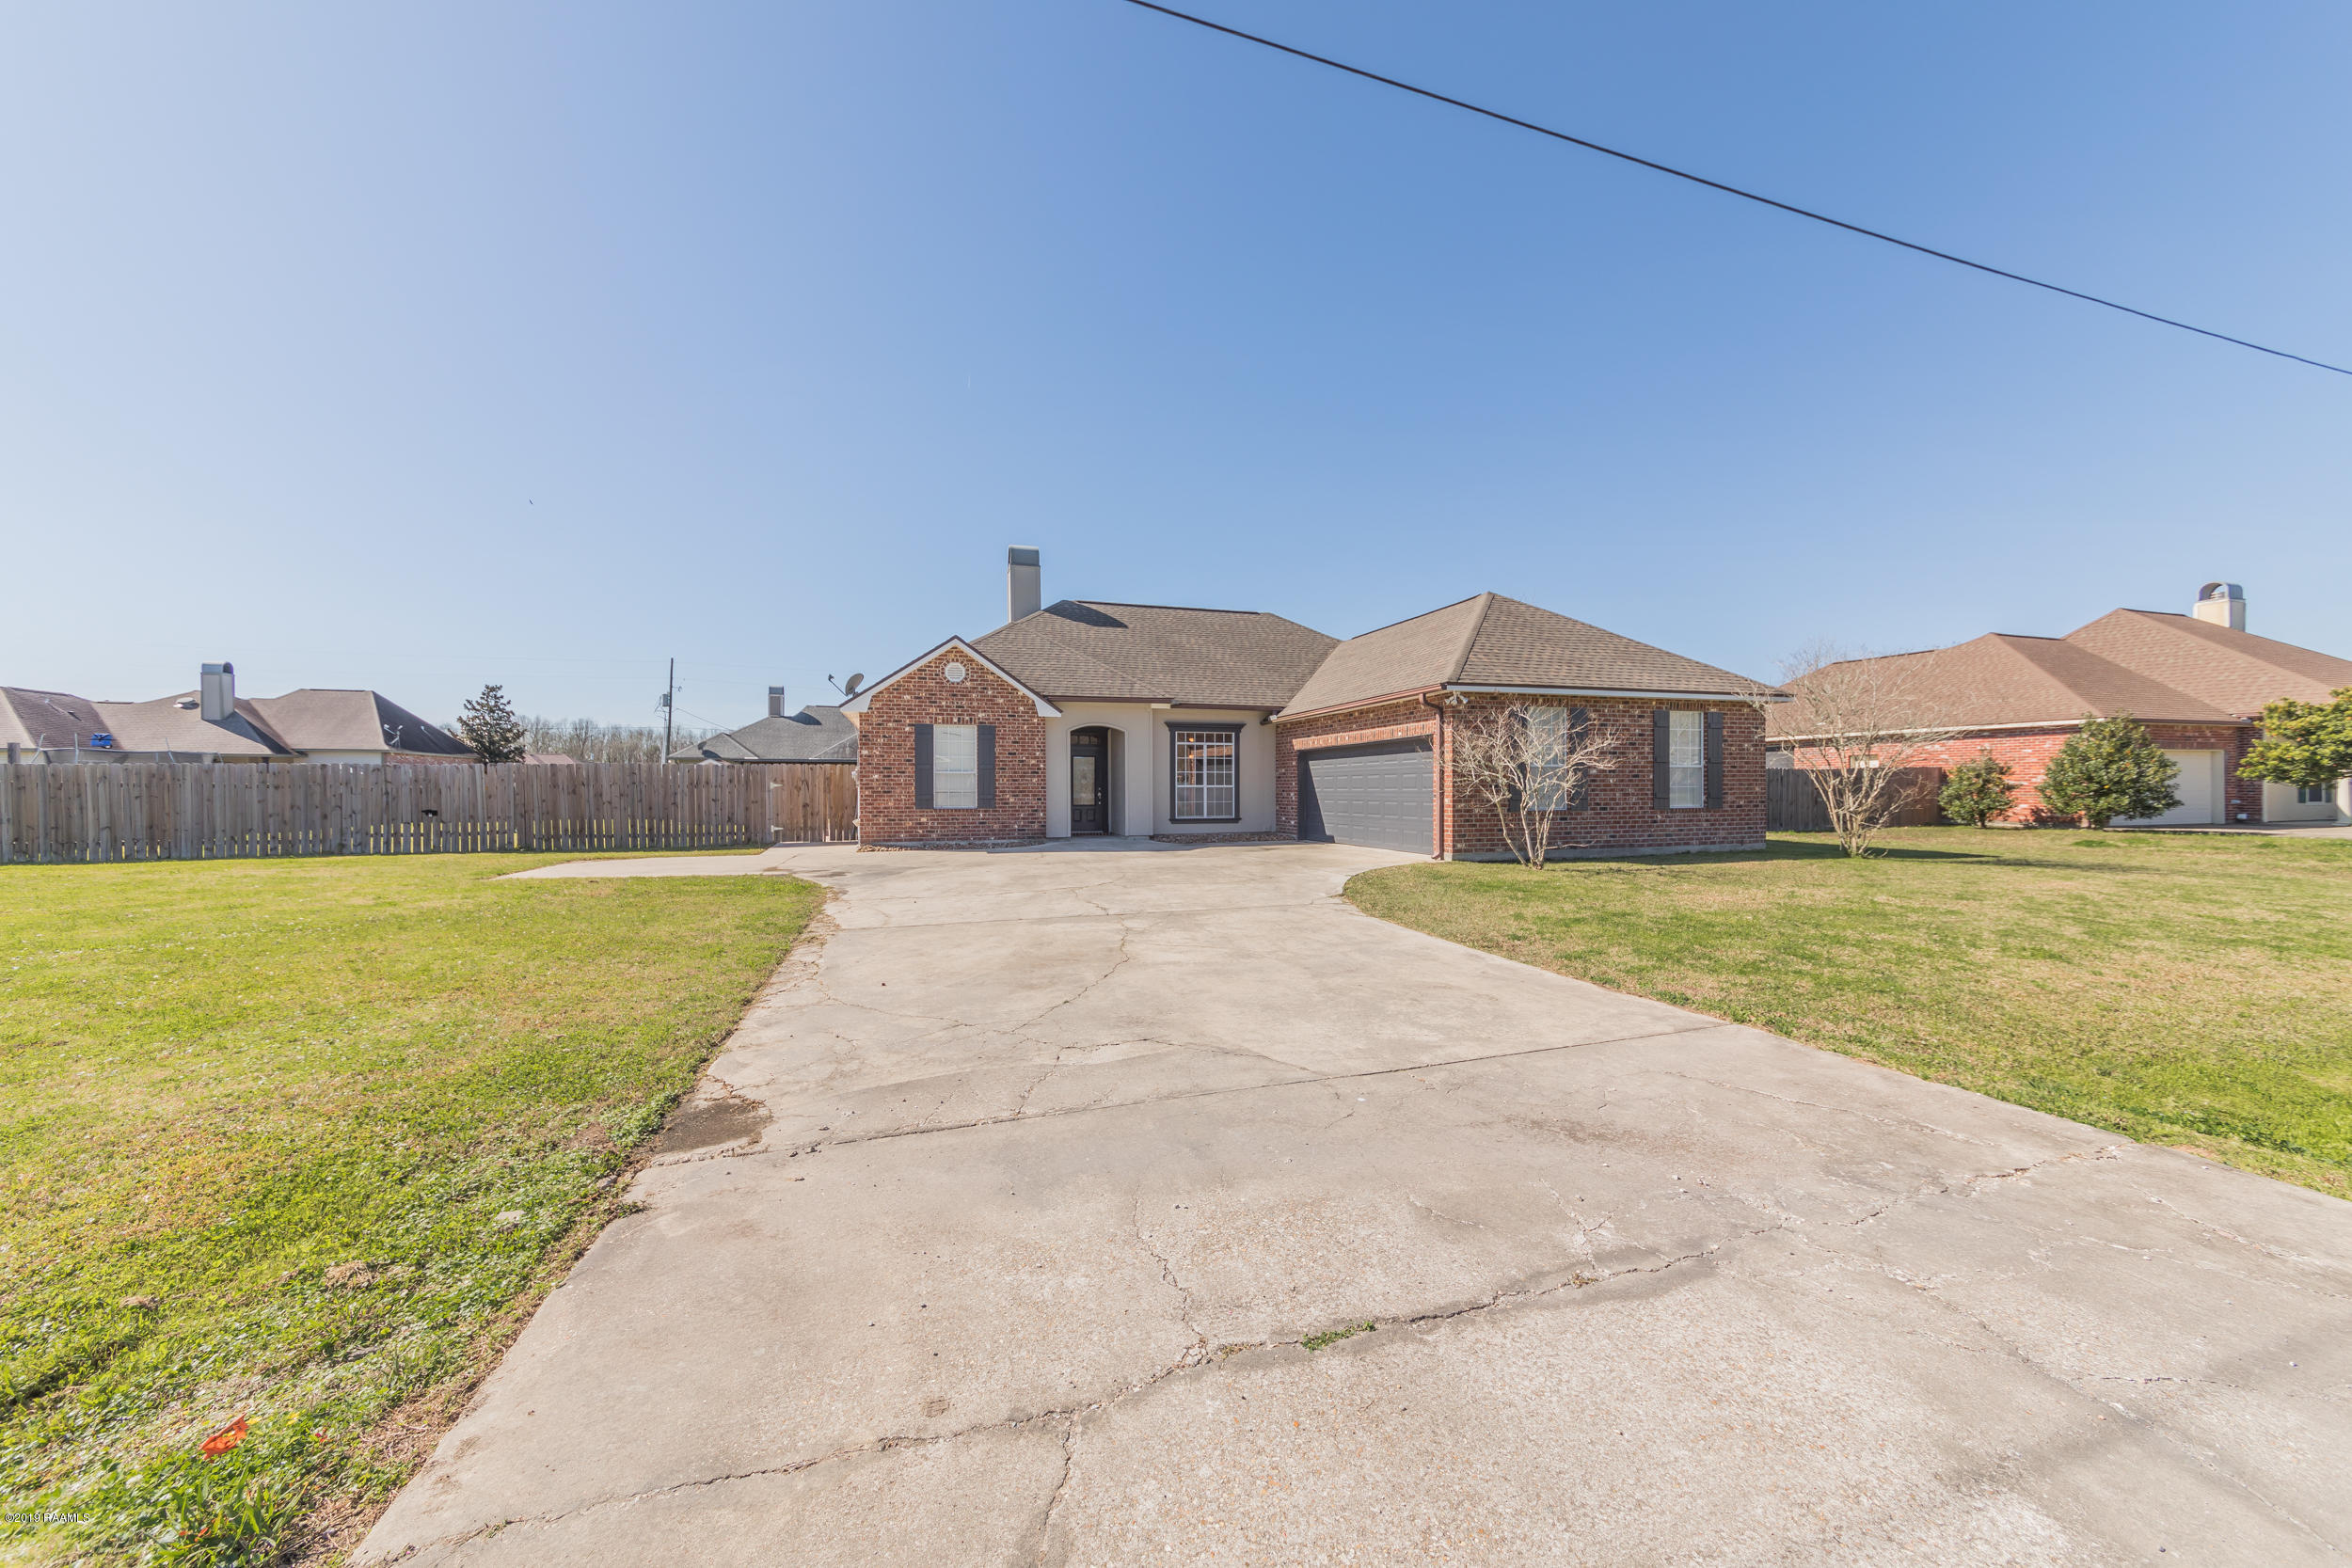 205 Bridgeport Lane, Carencro, LA 70520 Photo #2